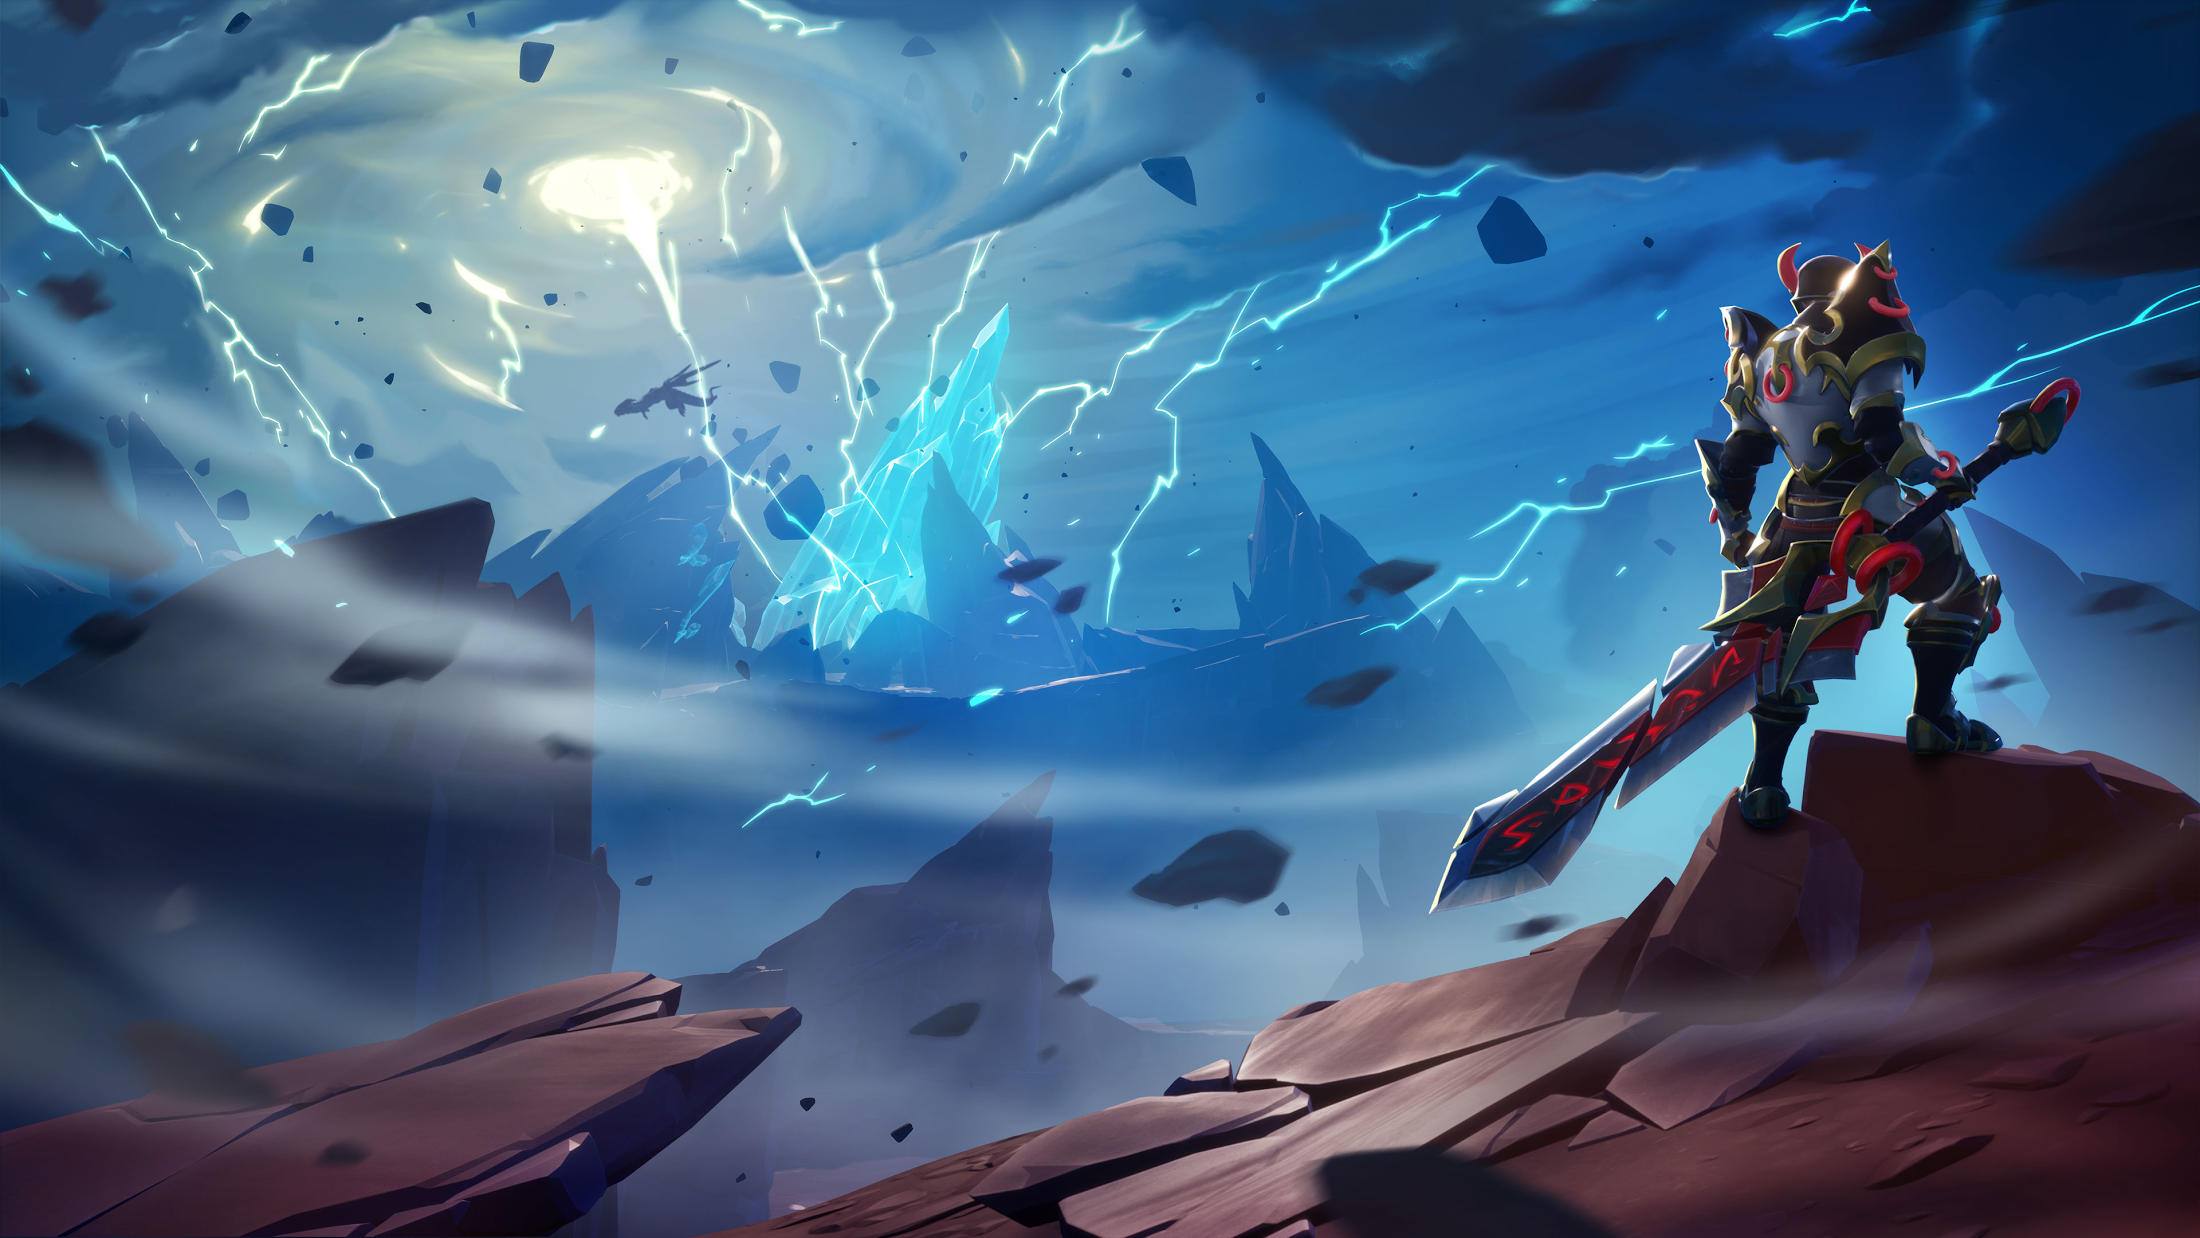 dauntless-screenshot_stormchasers_login-fullsize.jpg